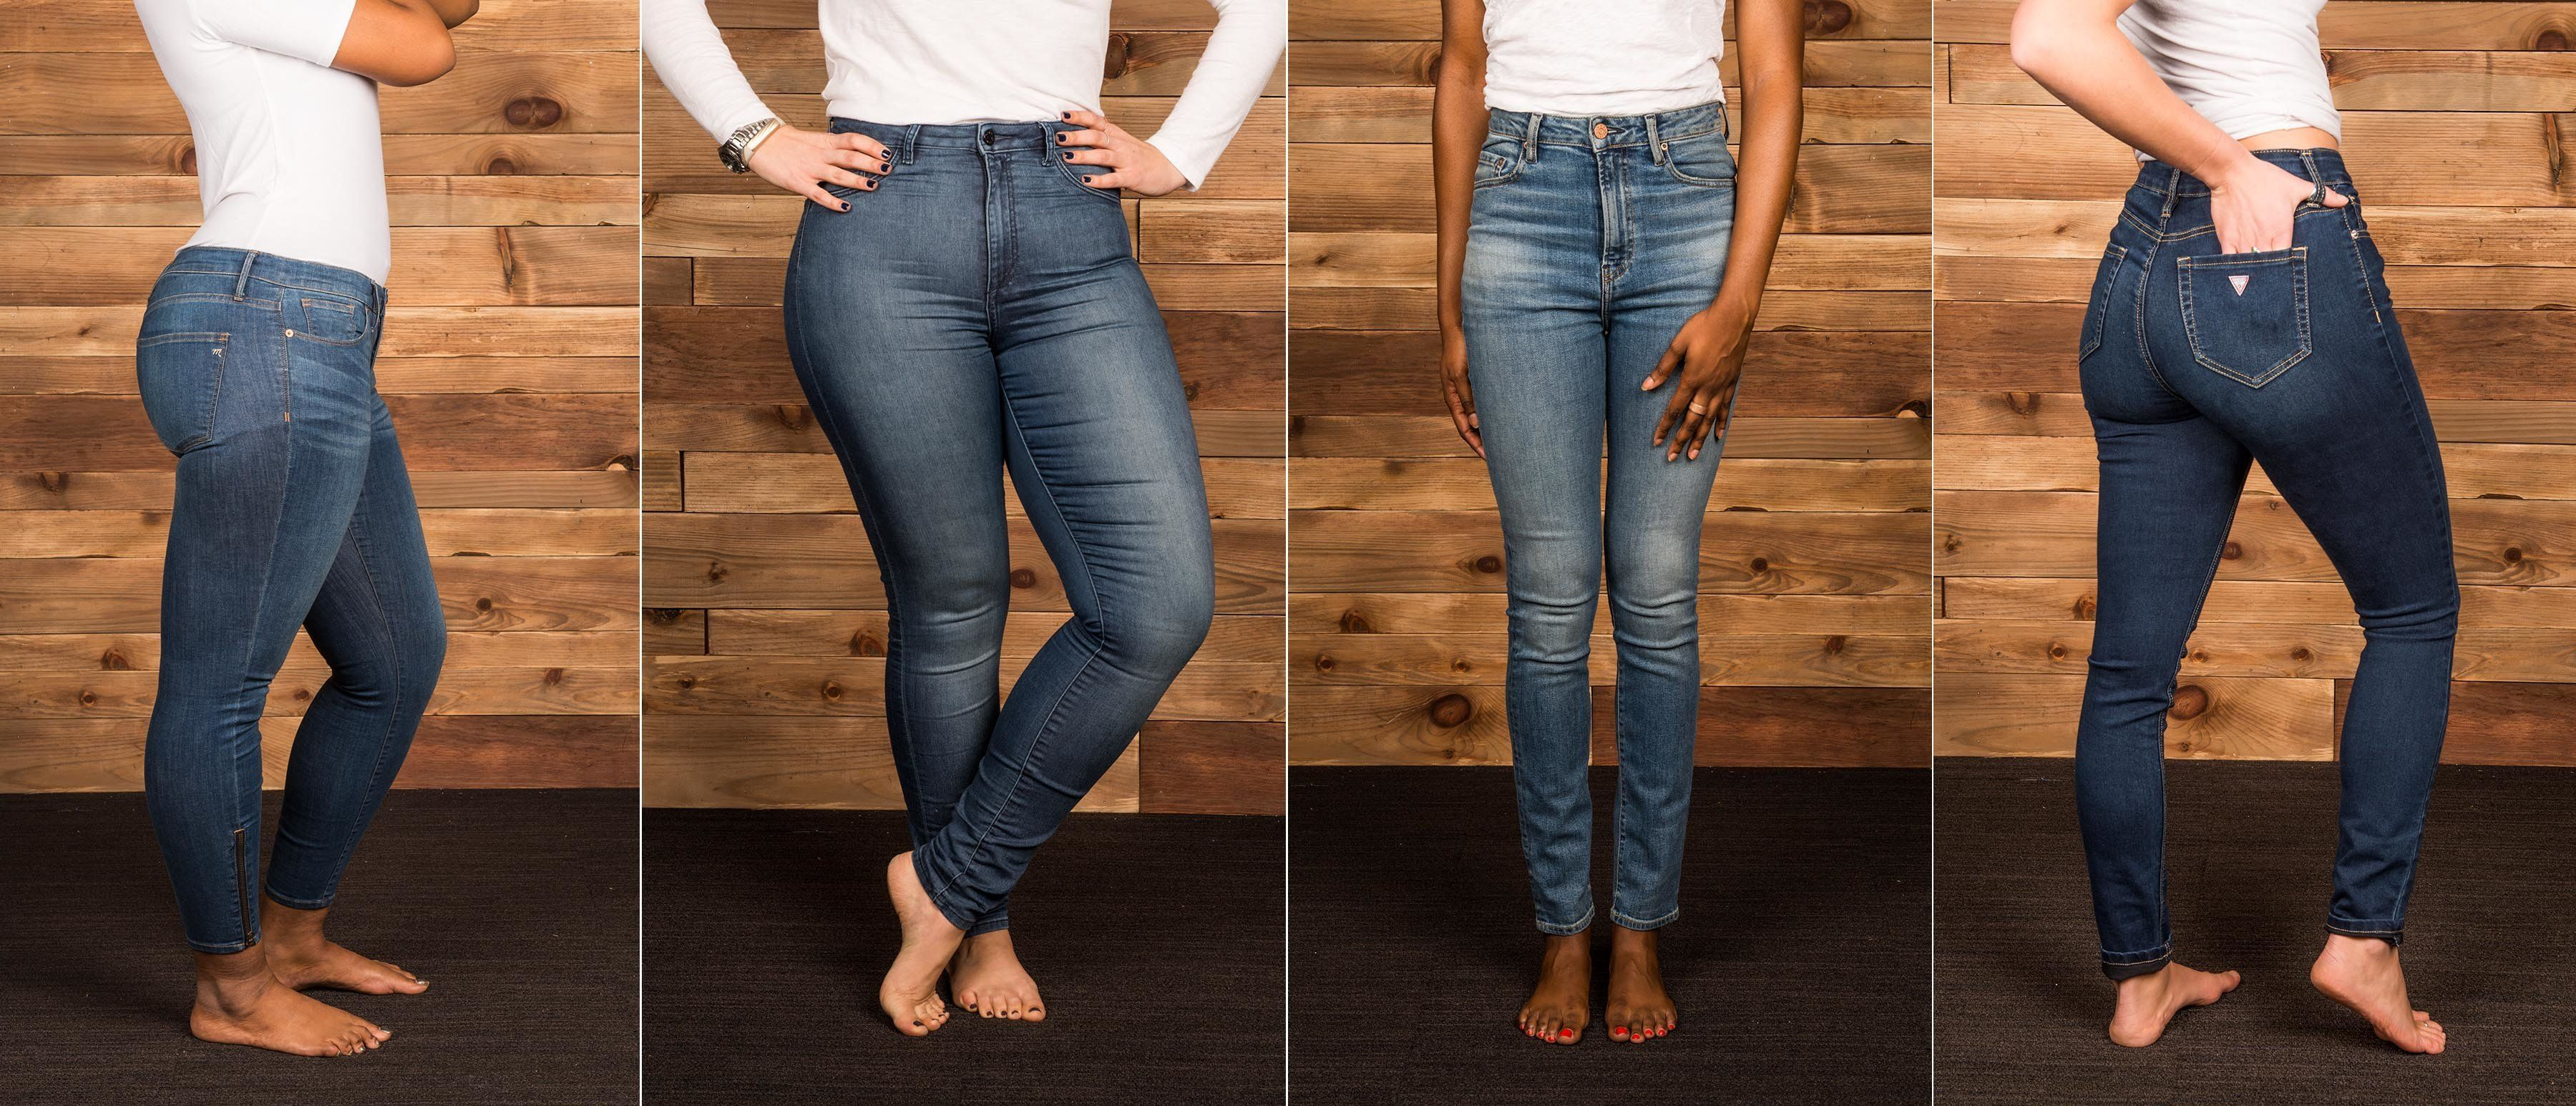 Skinny jeans for thick legs